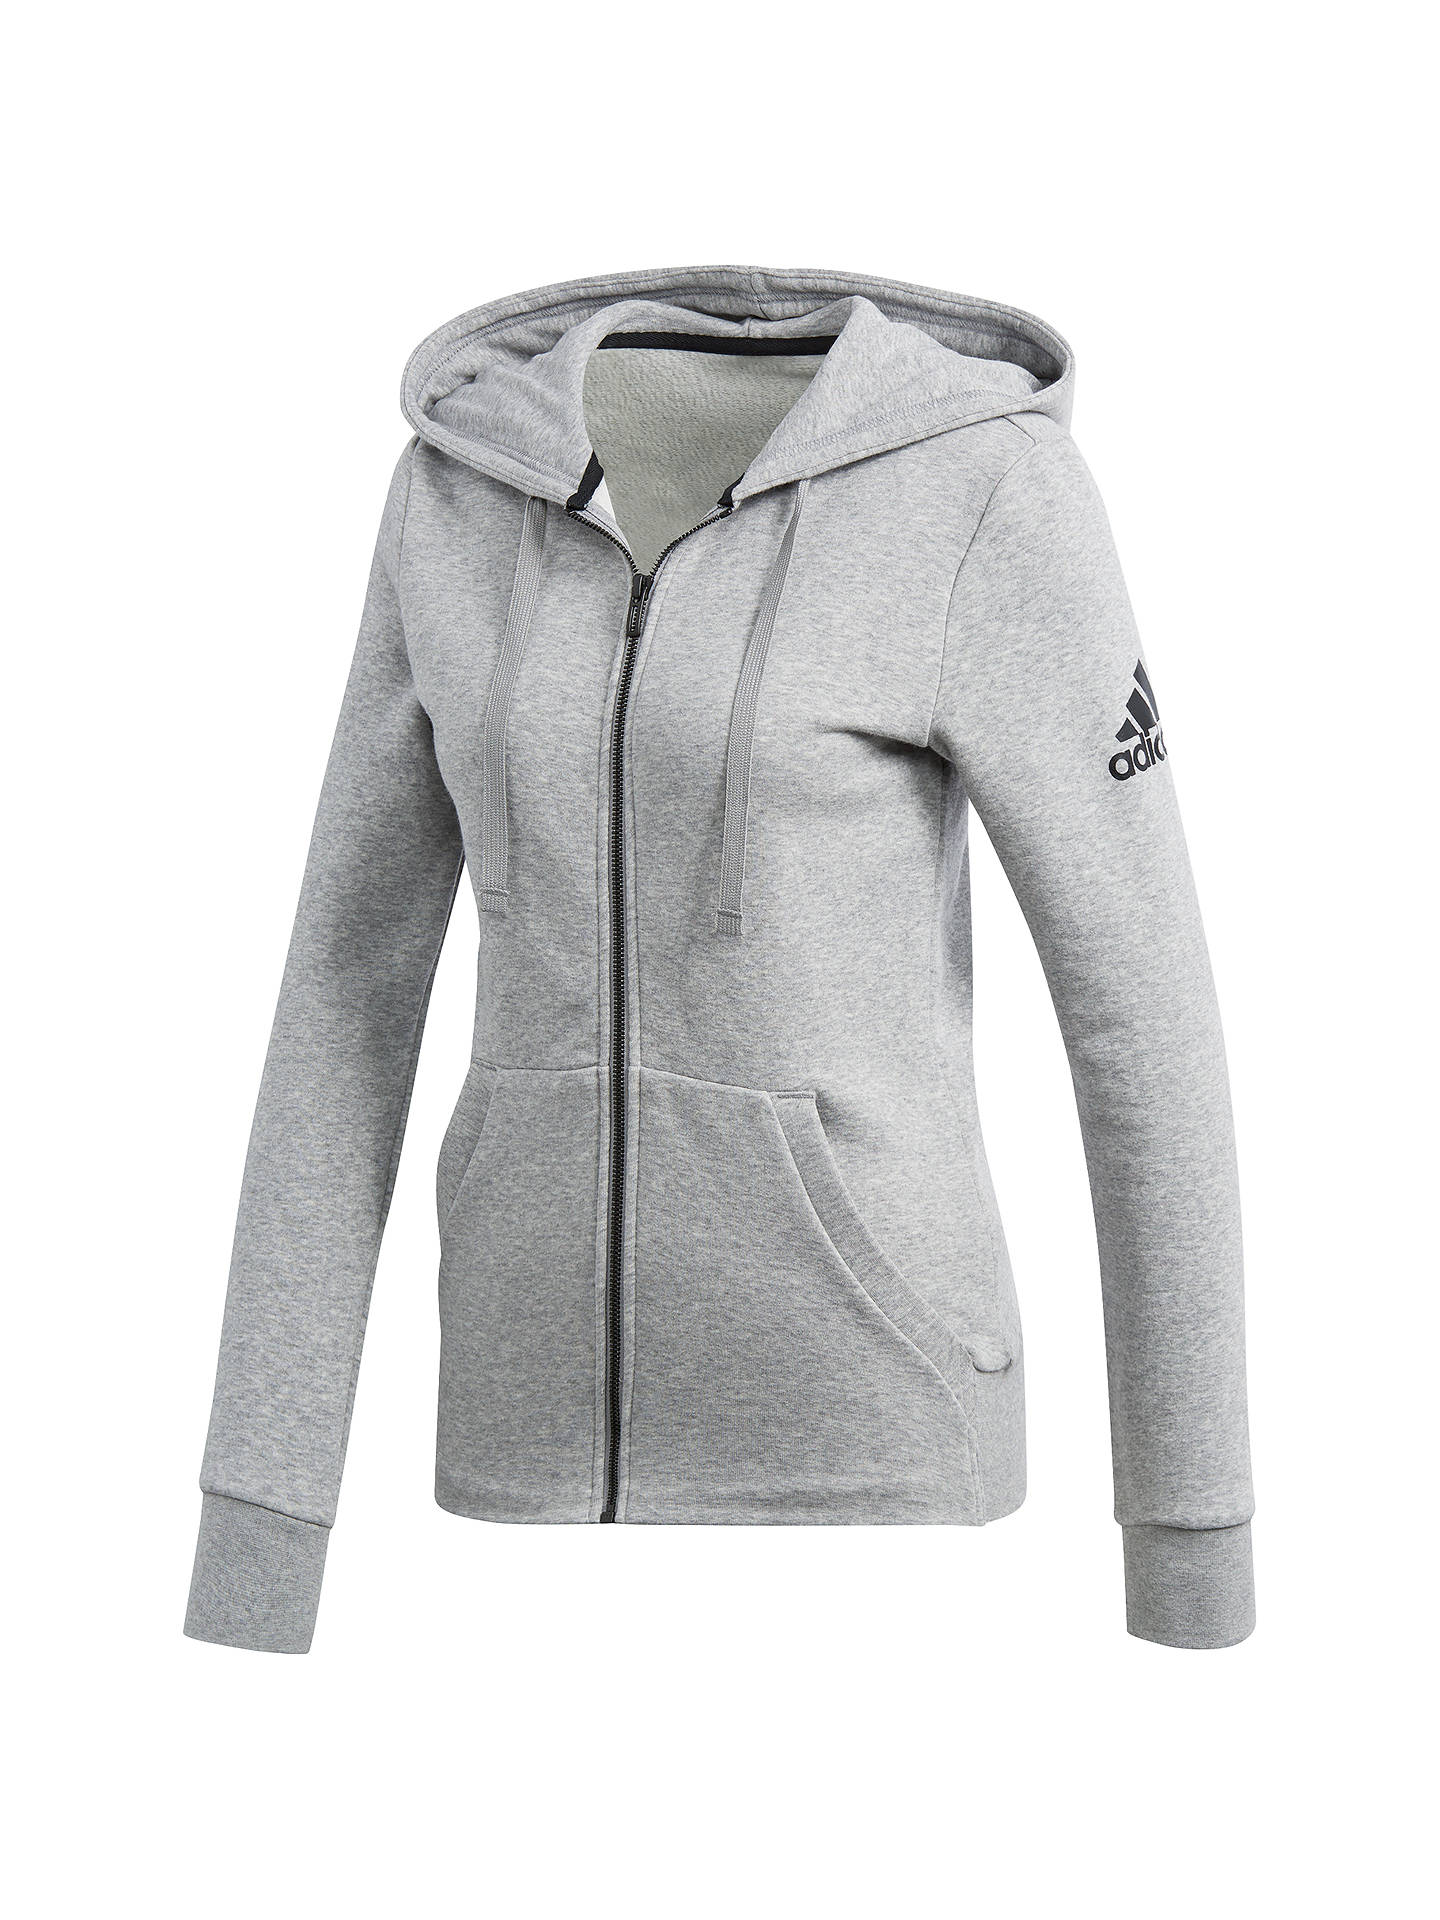 Buyadidas Essentials Solid Full Zip Training Hoodie, Grey Heather, XS Online at johnlewis.com